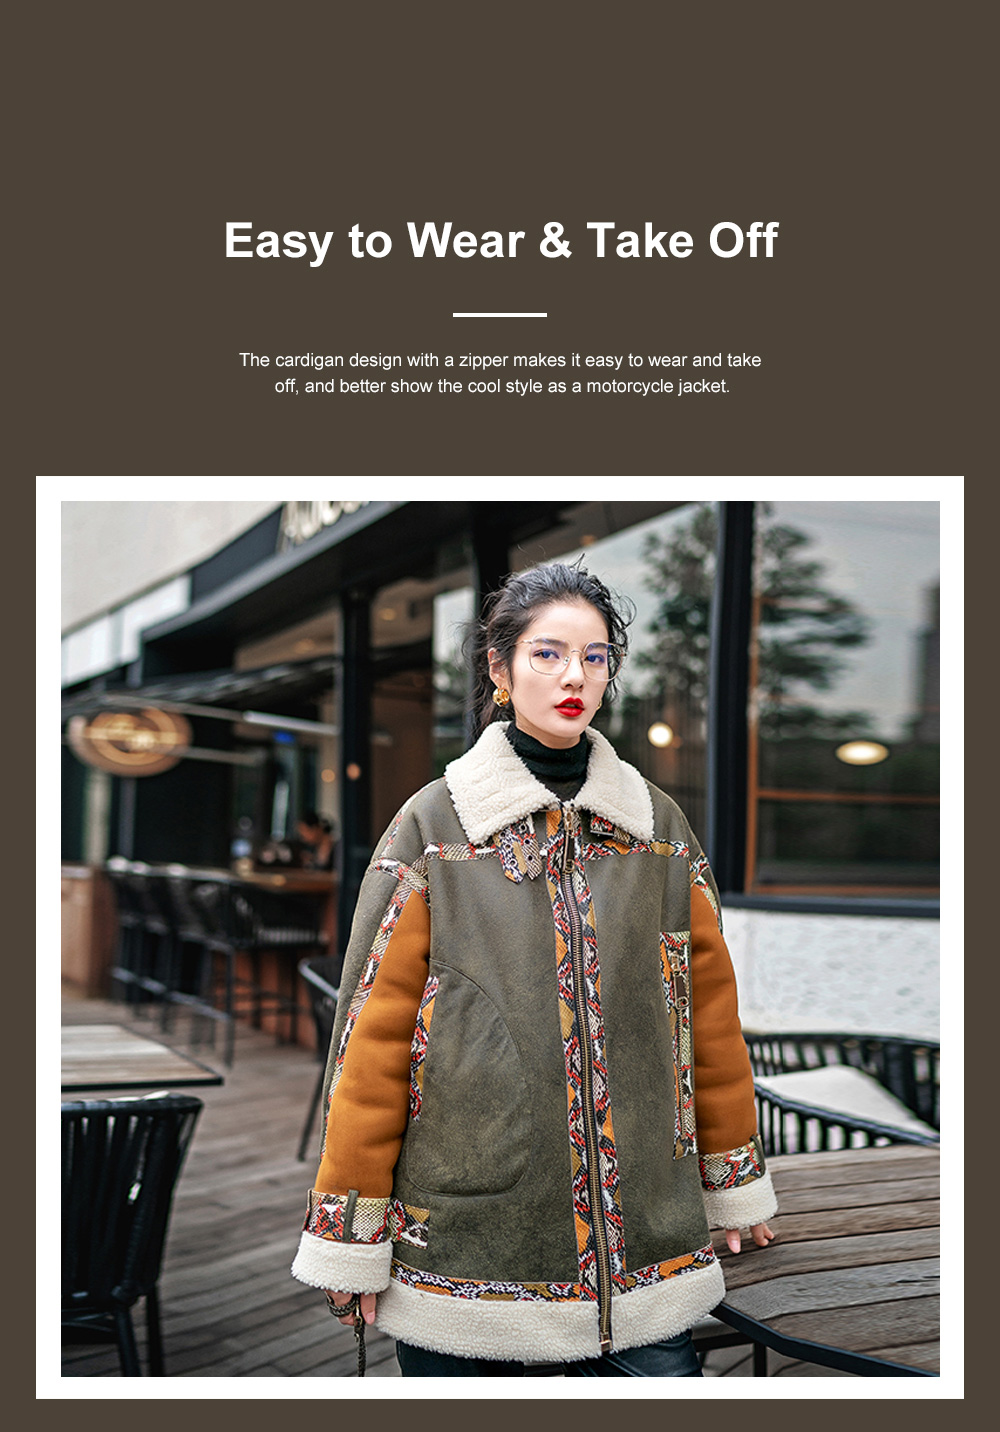 Short Lamb Coat for Women Oversized Zip Up Outwear for Cold Winter Cool Thicken Motorcycle PU Leather Jackets for Ladies 2